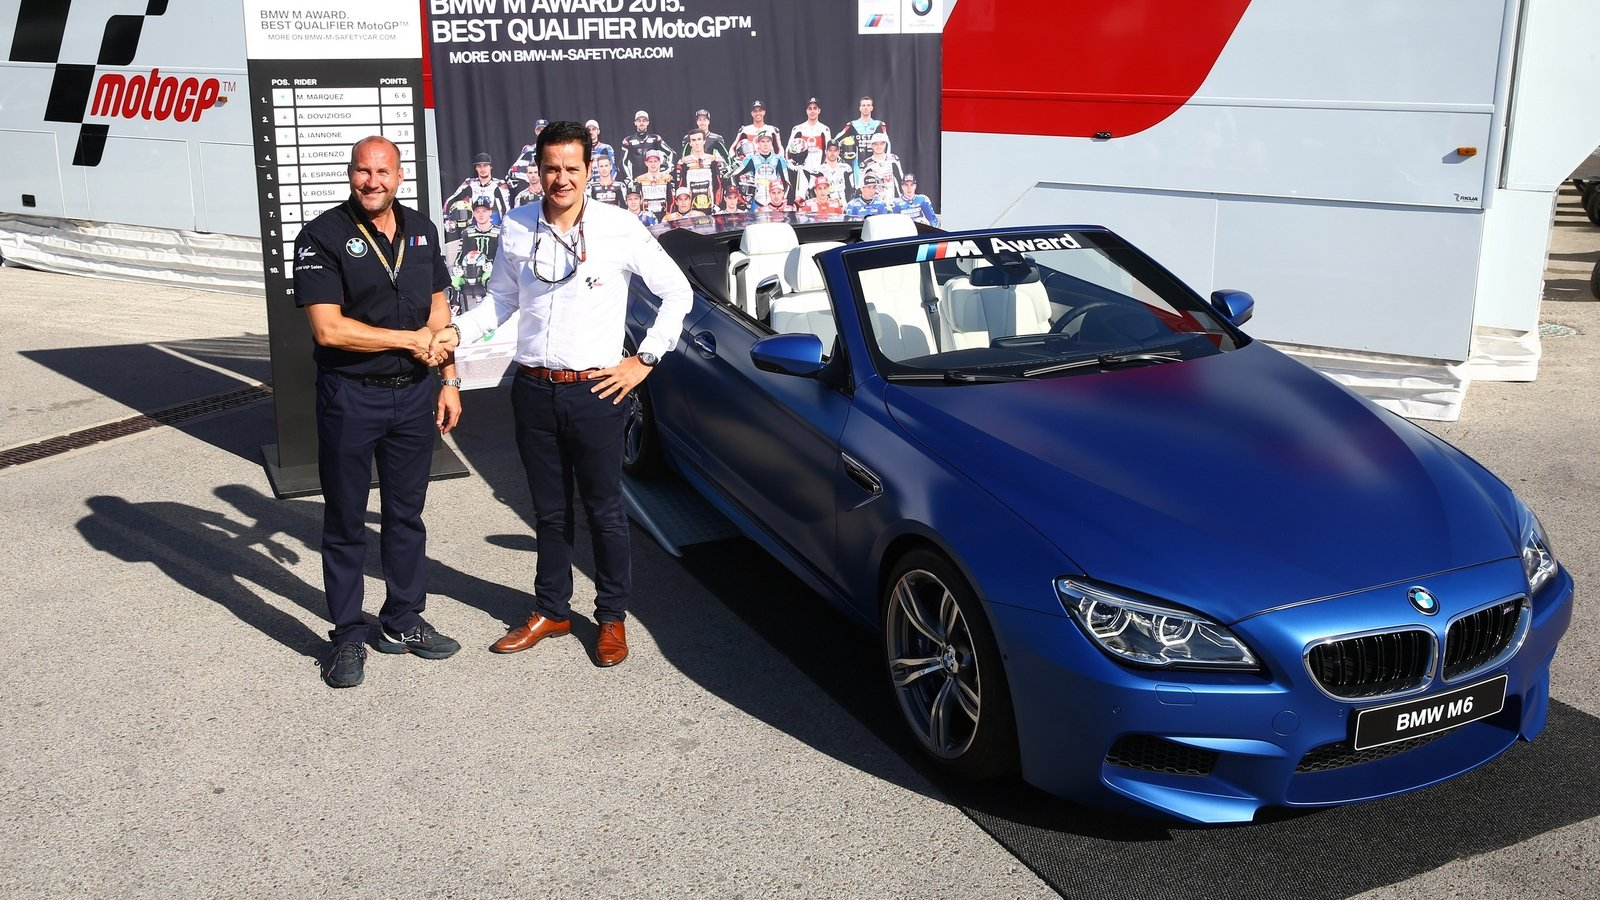 Bmw Unveils M6 Convertible Special Edition For Motogp Top Speed